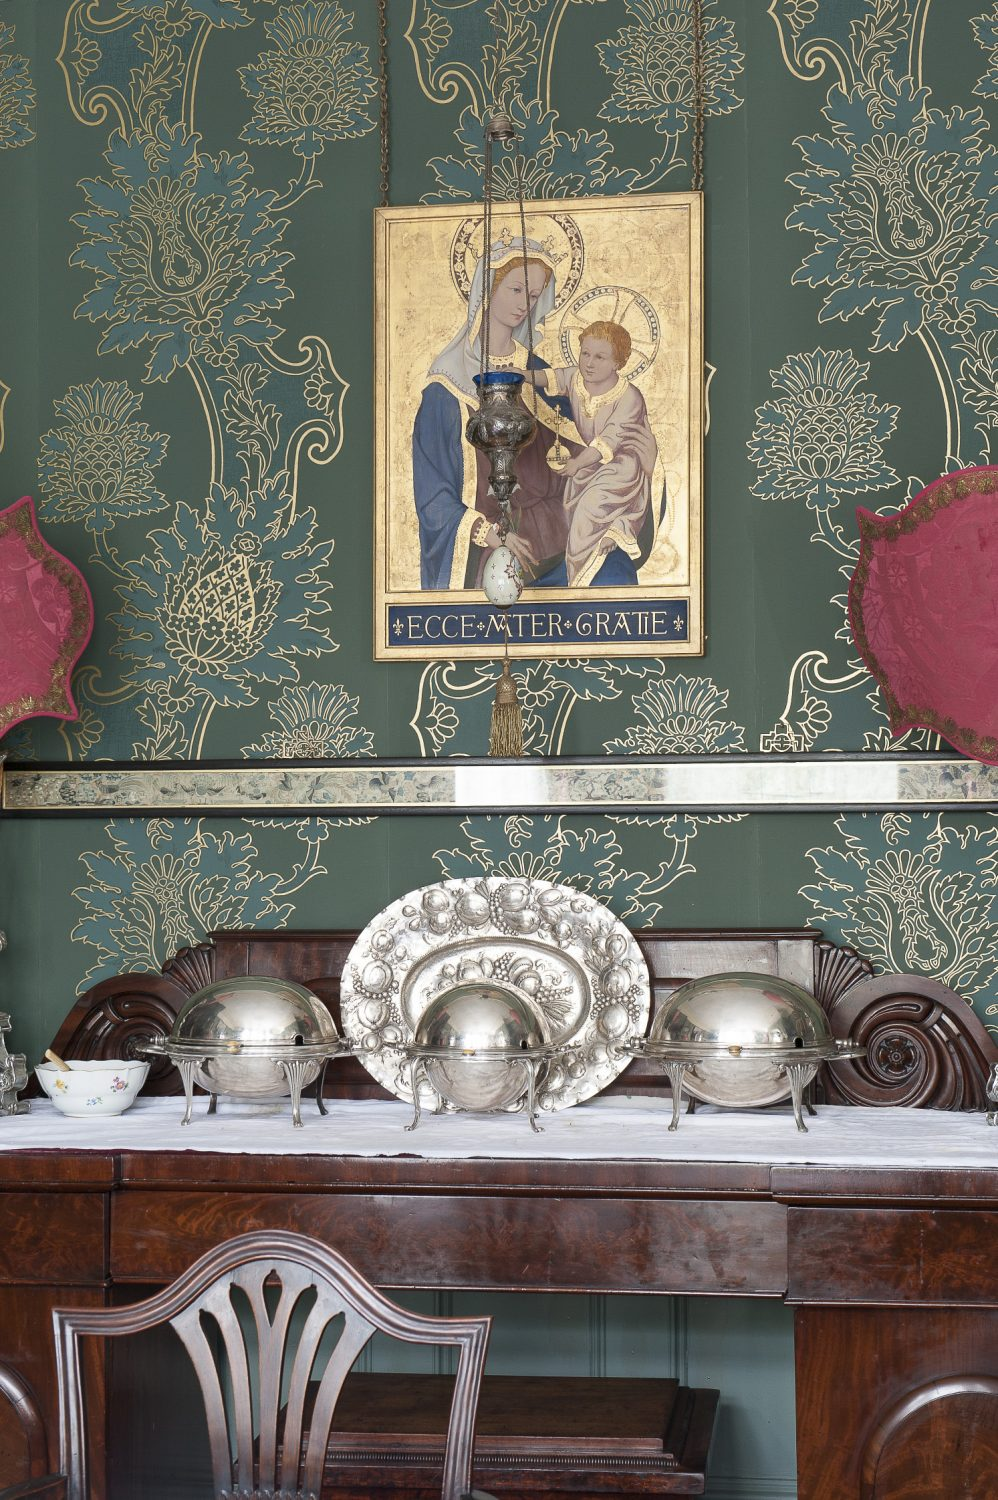 Part of the St. Benedict experience is breakfast in the dining room just across the hall from the drawing room, resplendent with green and gold Watts of Westminster wallpaper and a crystal chandelier, served in silver chafing dishes in the English country house manner